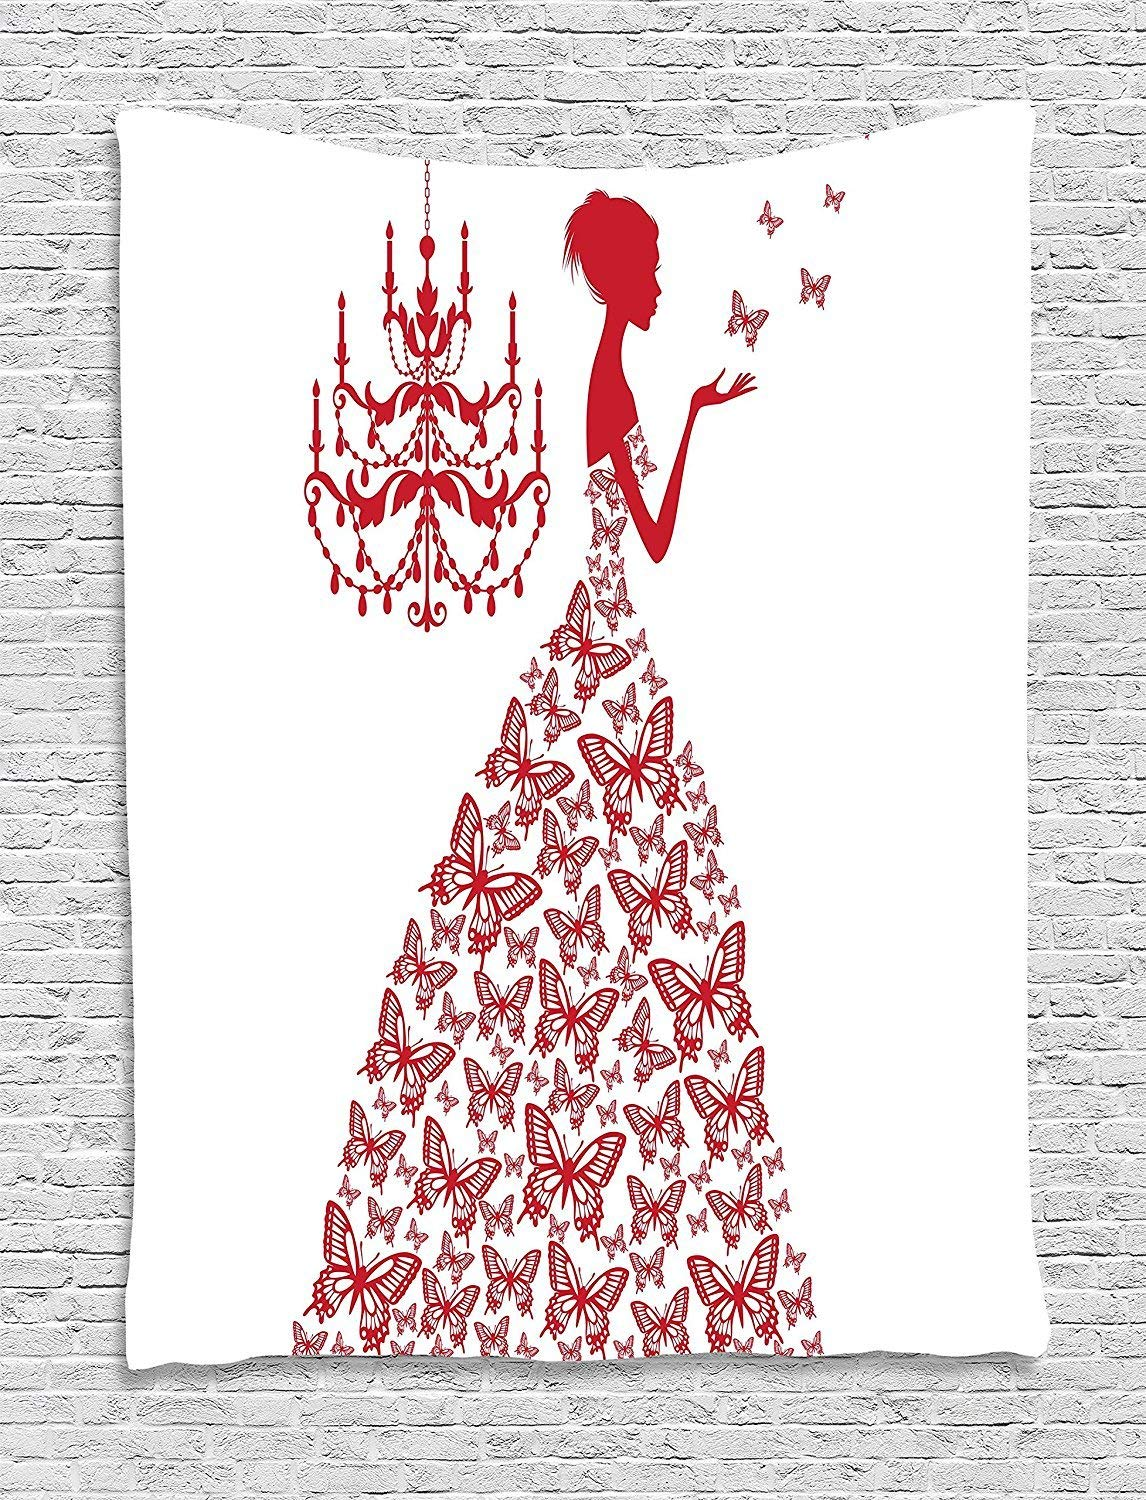 XHFITCLtd Love Decor Wall Hanging Tapestry, Country Wedding Artwork Prints Butterflies Princess Retro Chic Girls Teens Bachelorette Party, Bedroom Living Room Dorm Decor, 40 W x 60 L Inches, Red